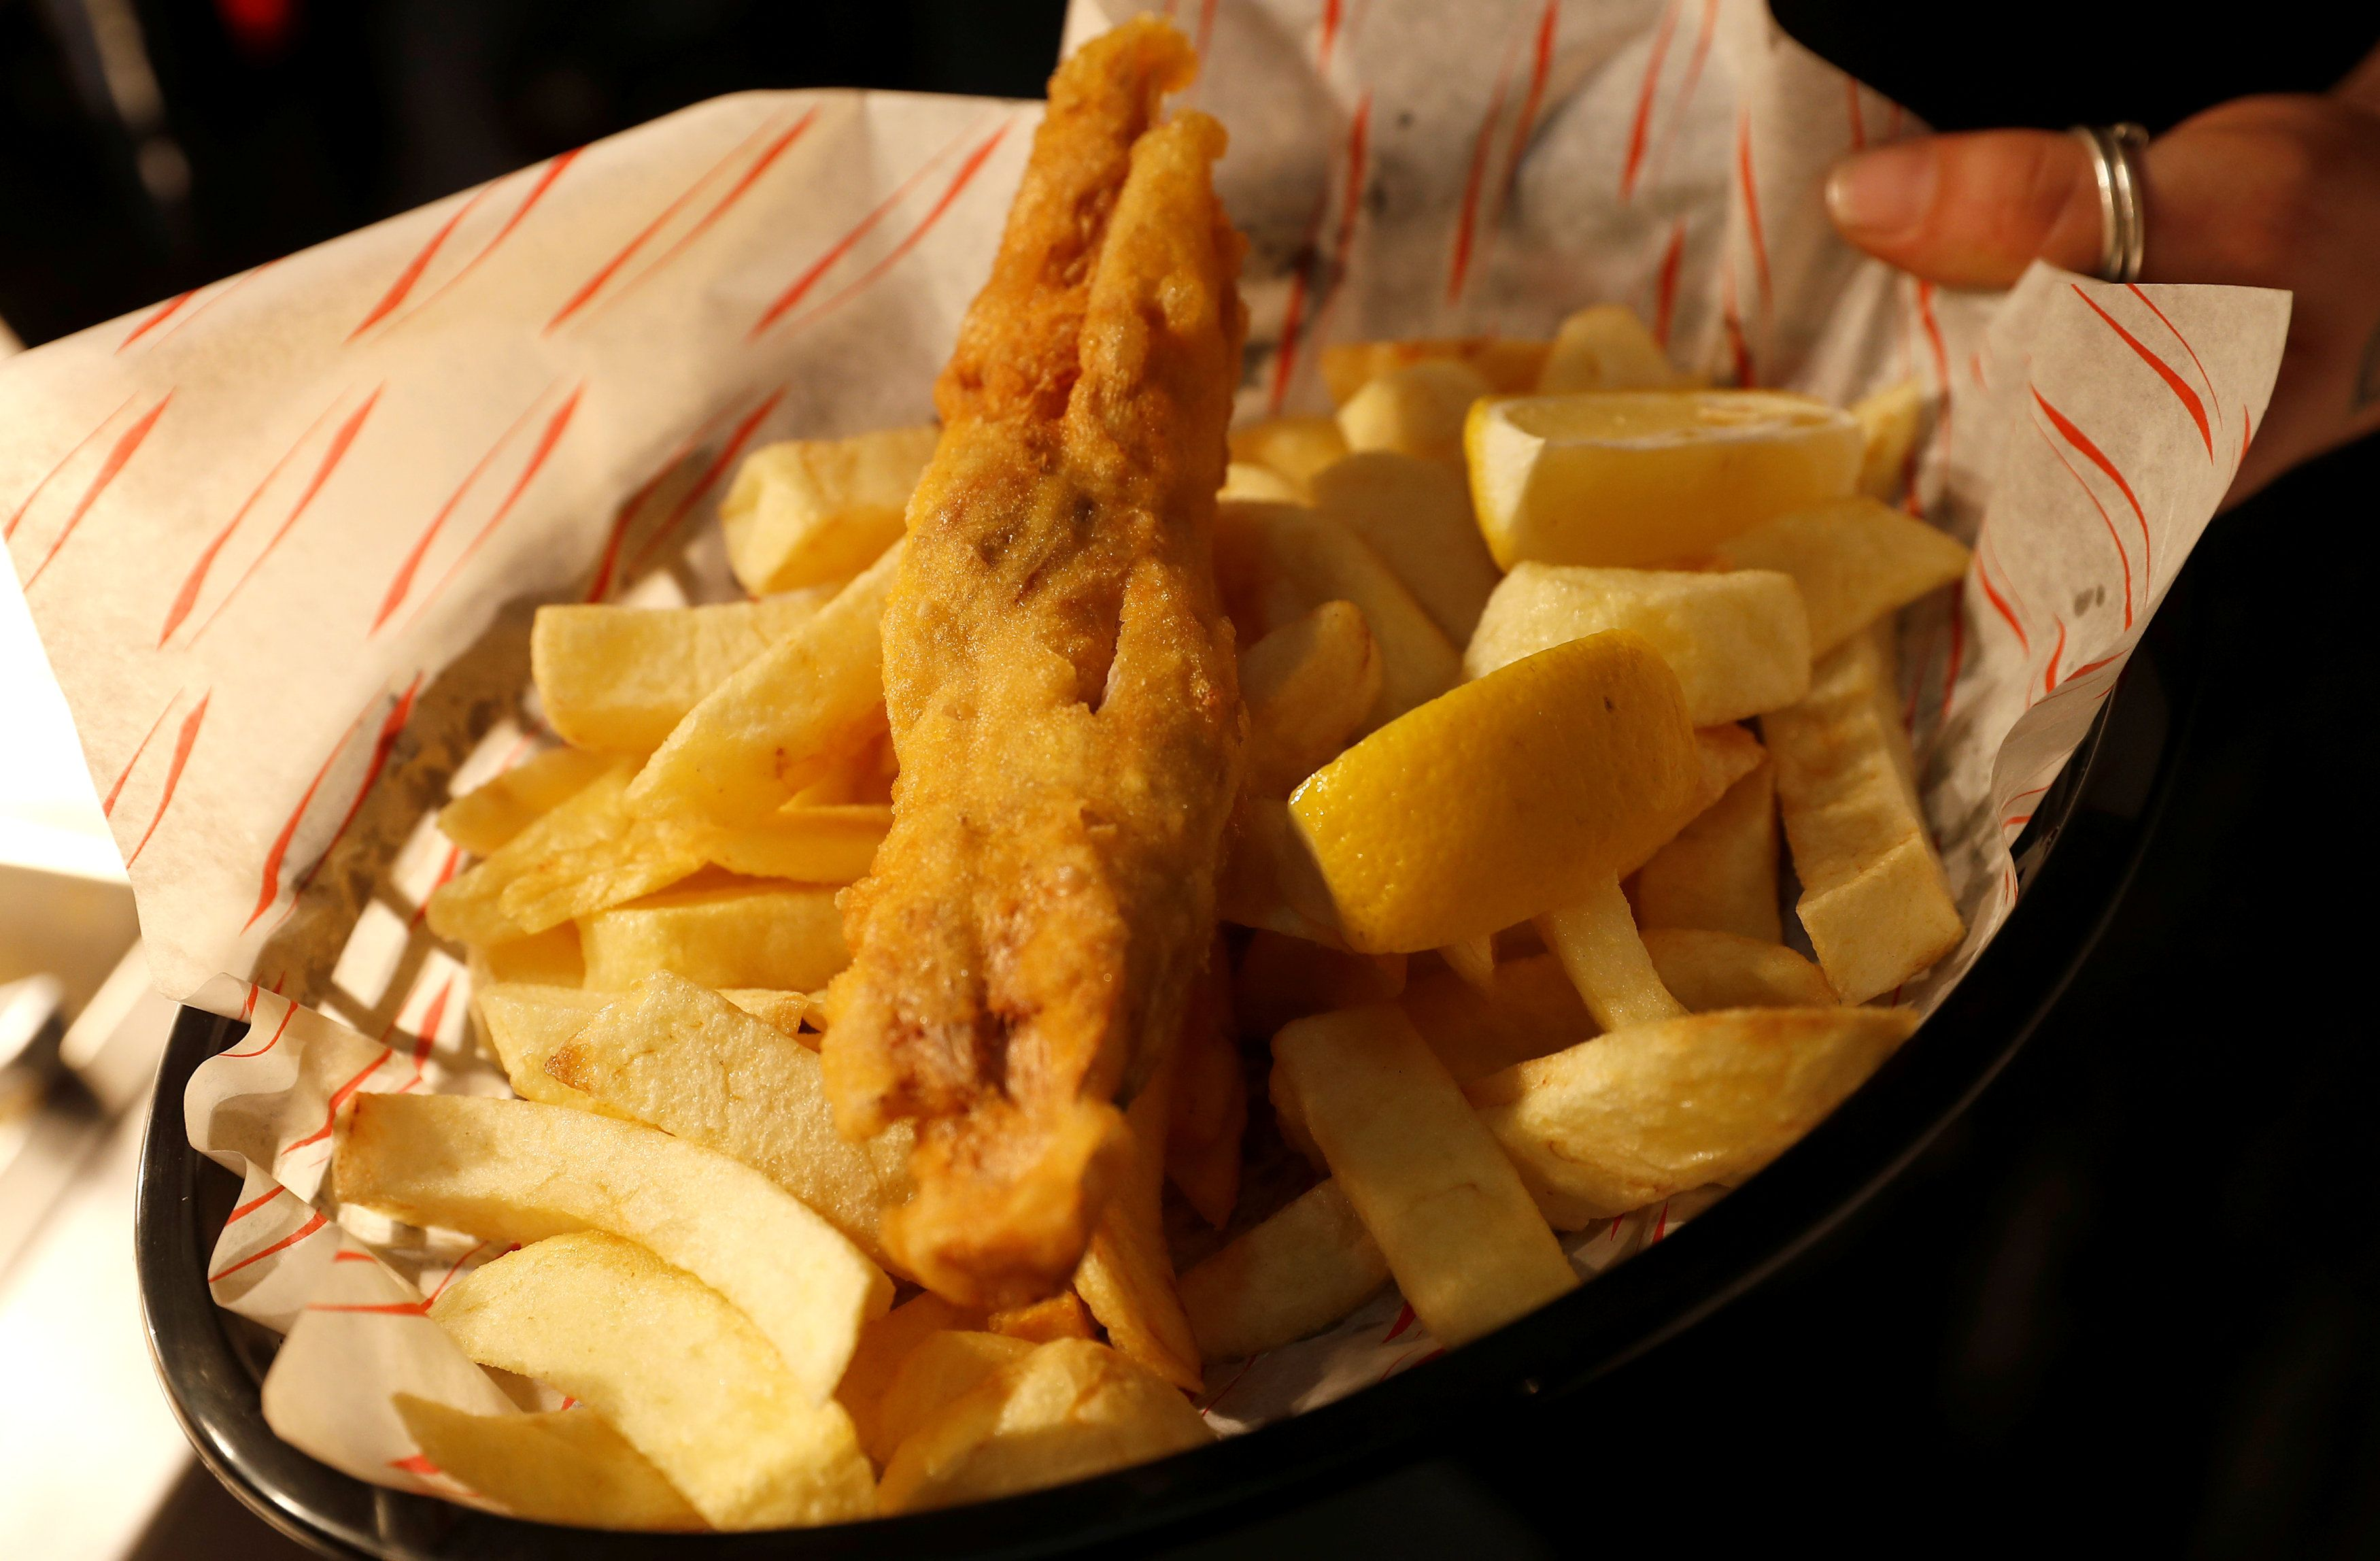 A Sutton And Sons Vegan Fish And Chips Serving Is Seen In Their Restaurant In Hackney London Vegan Fish Vegan Fish And Chips Fish And Chips Restaurant